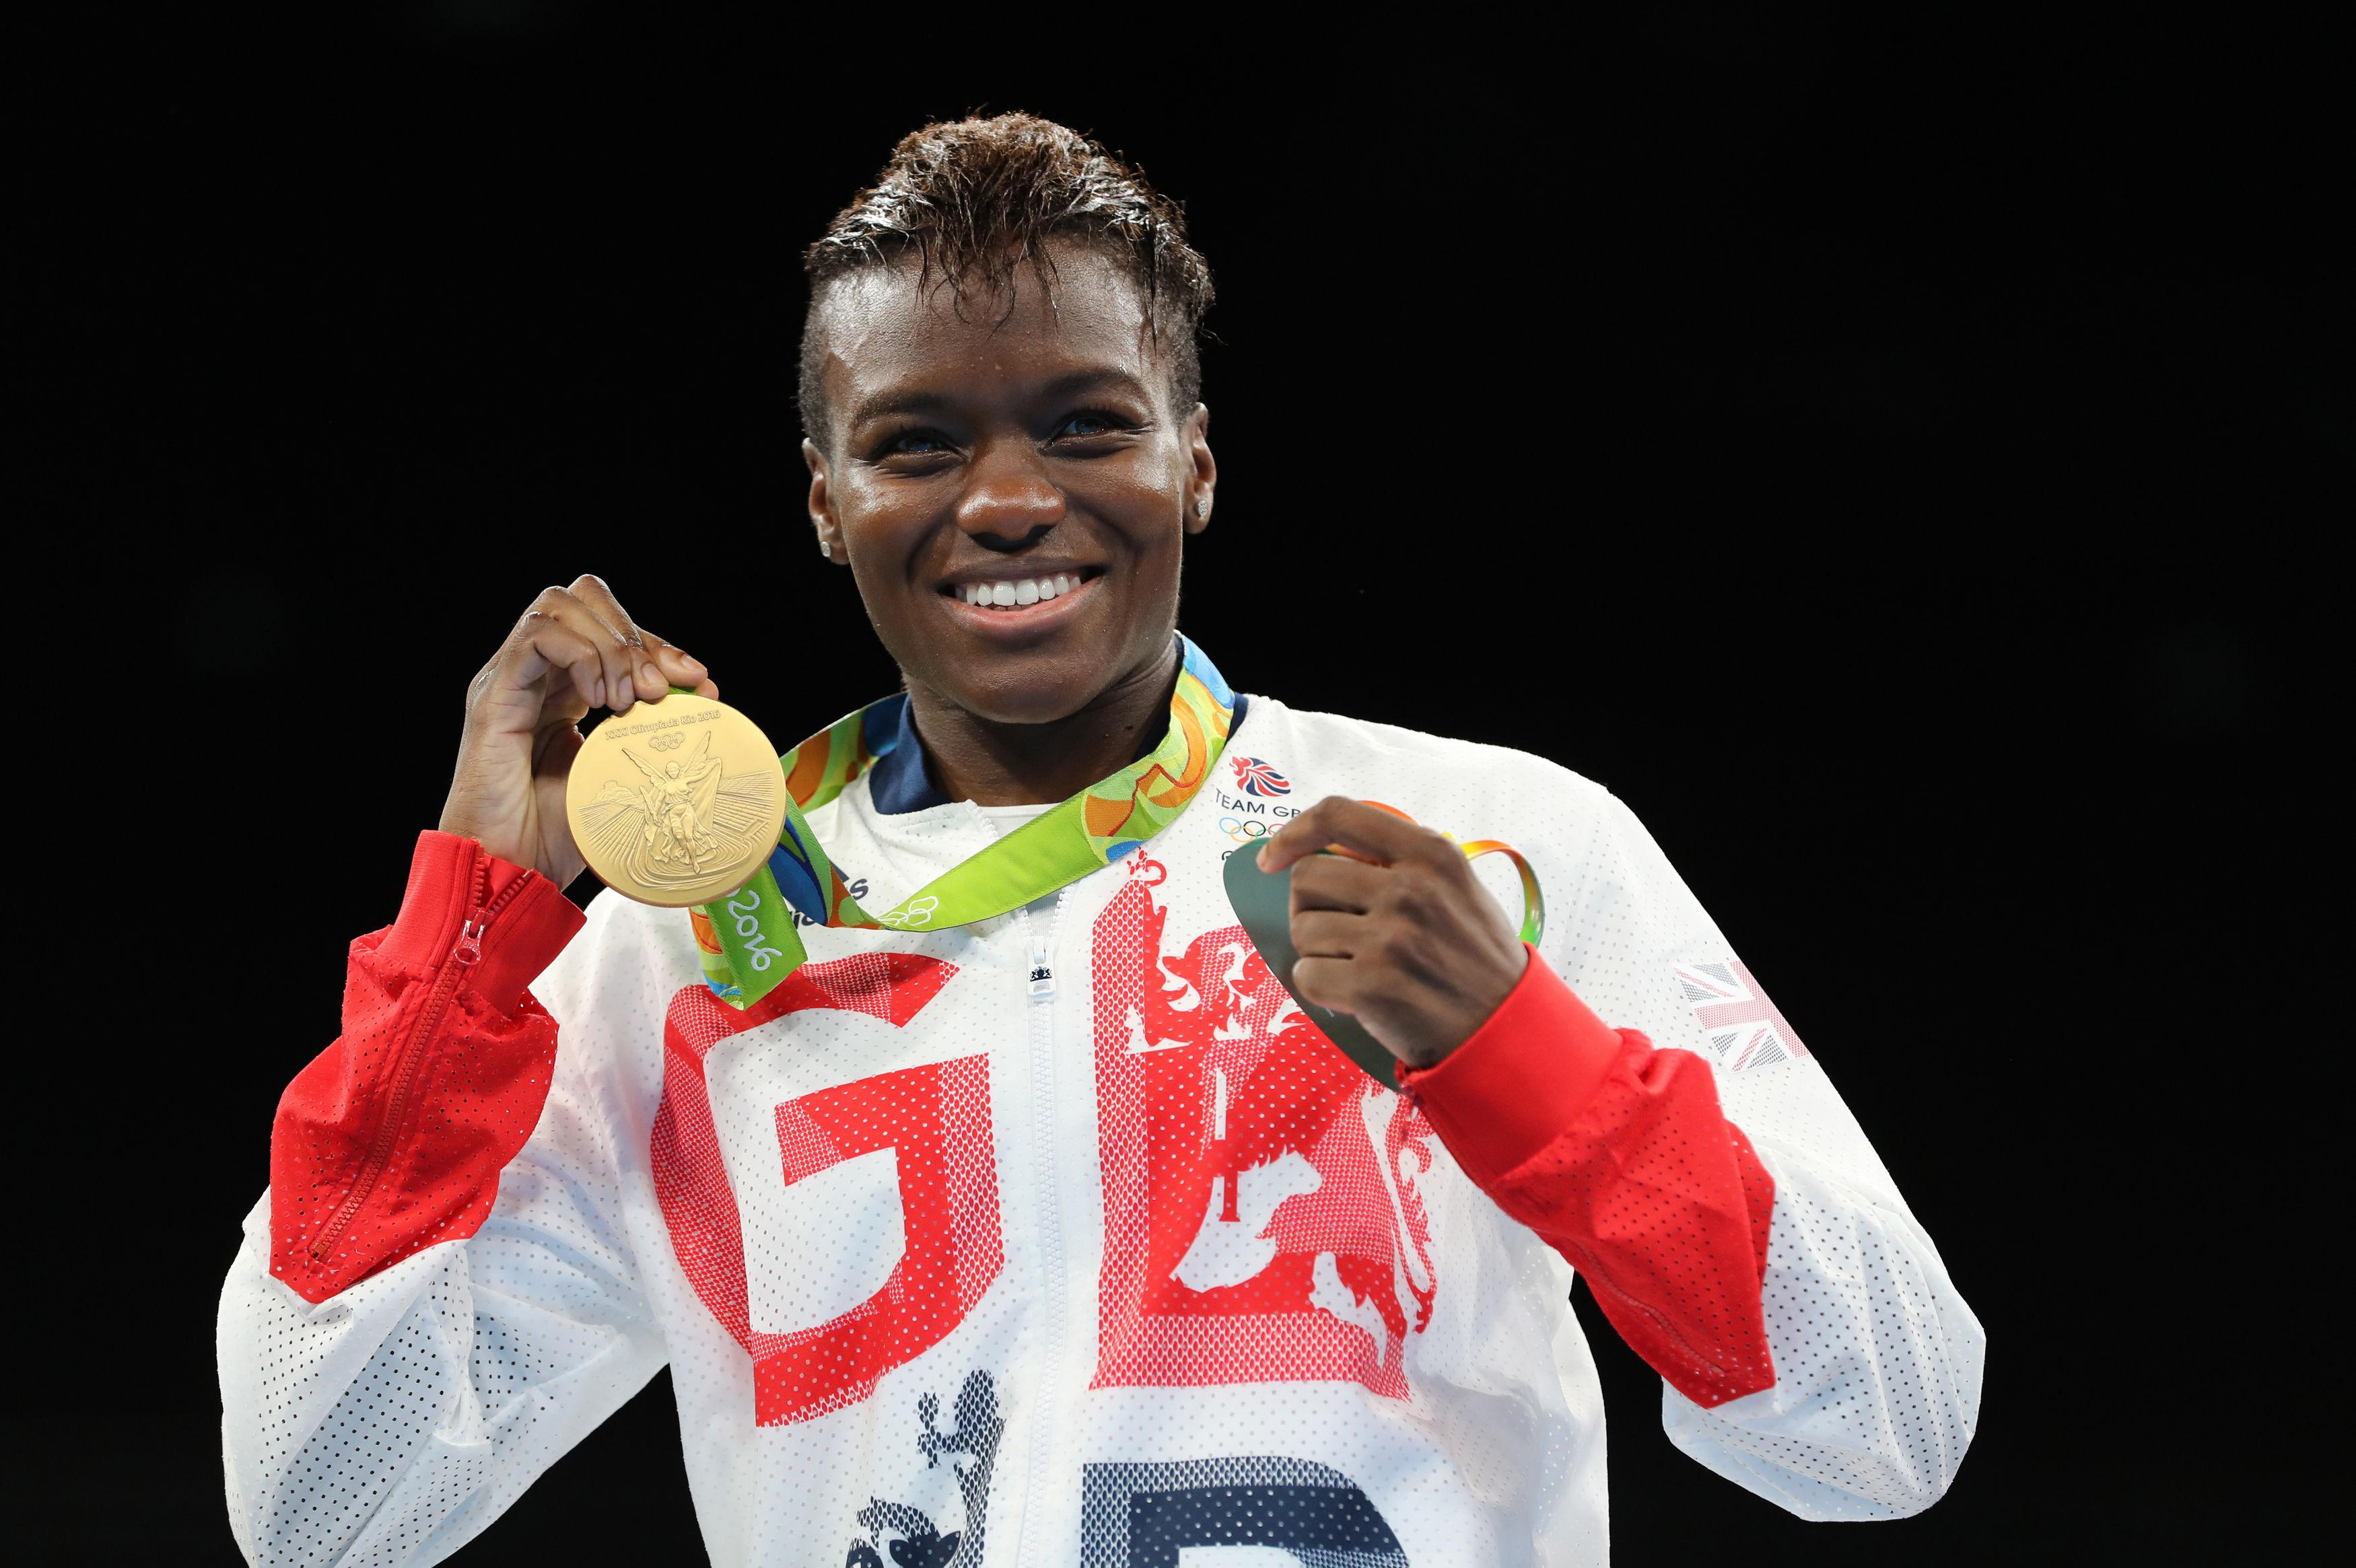 The Leeds superstar won back-to-back Olympic golds